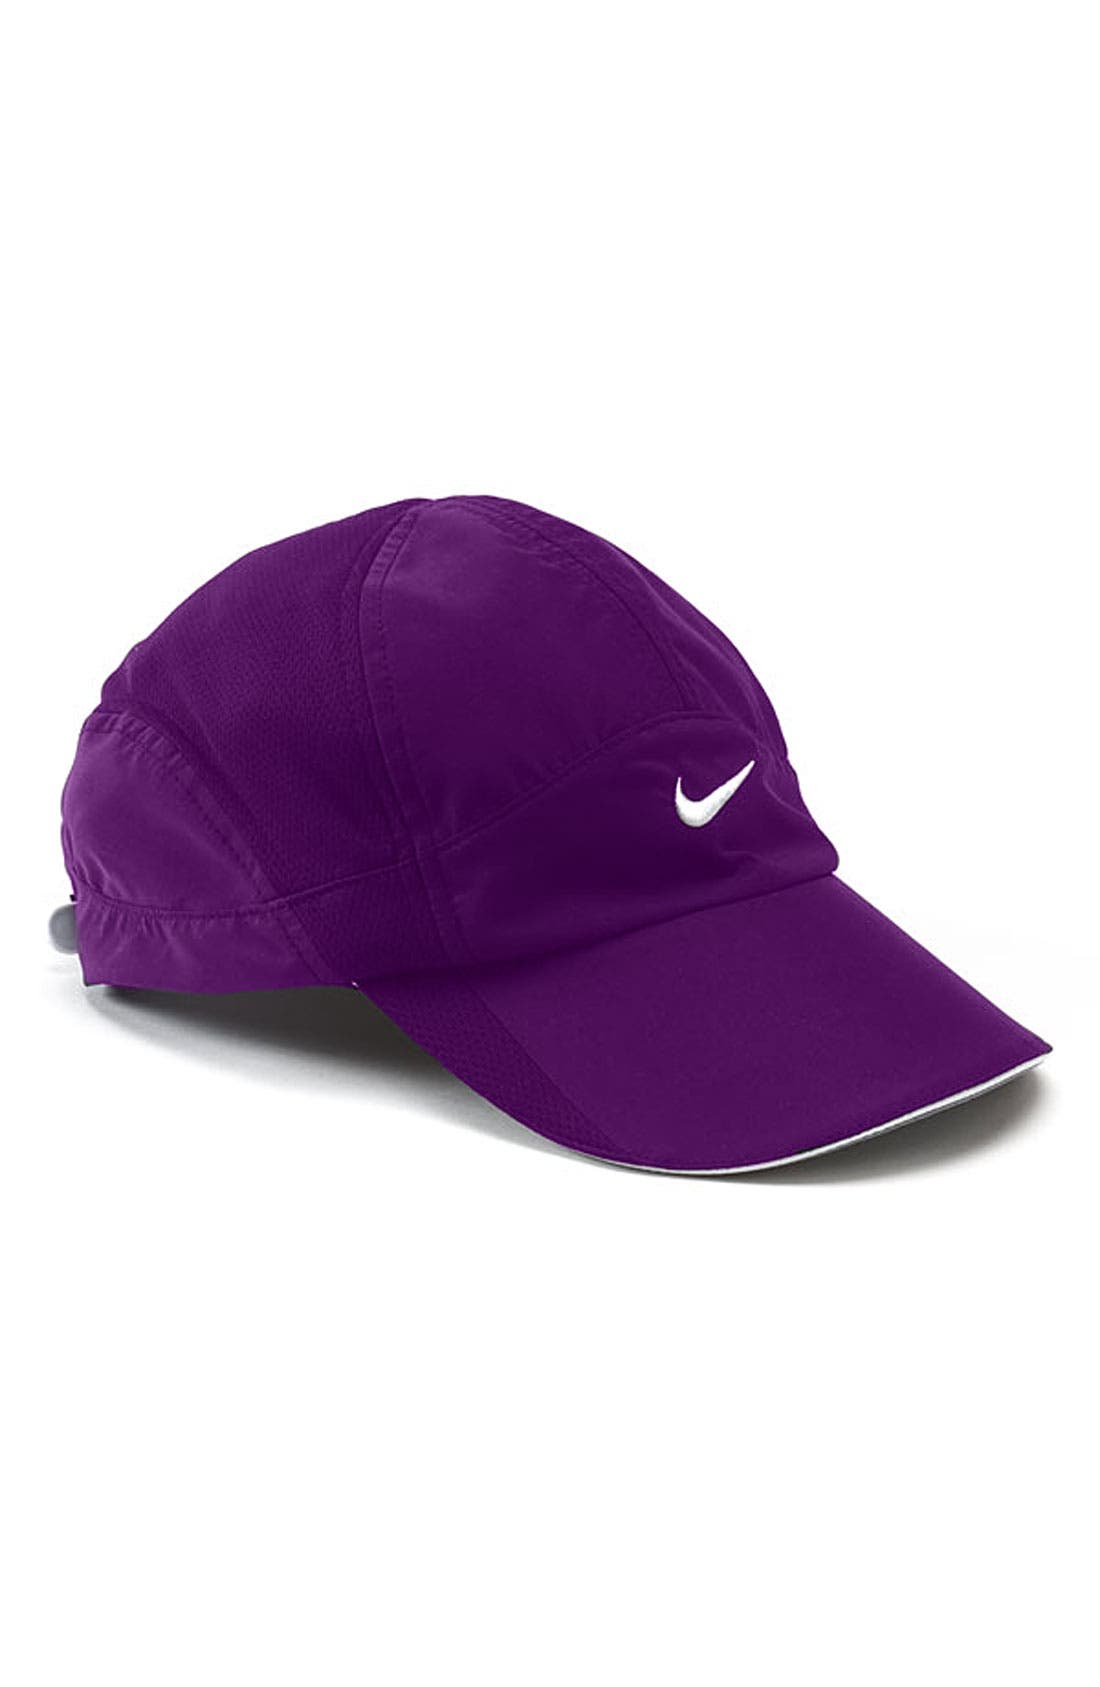 Alternate Image 1 Selected - Nike 'Feather Light' Cap